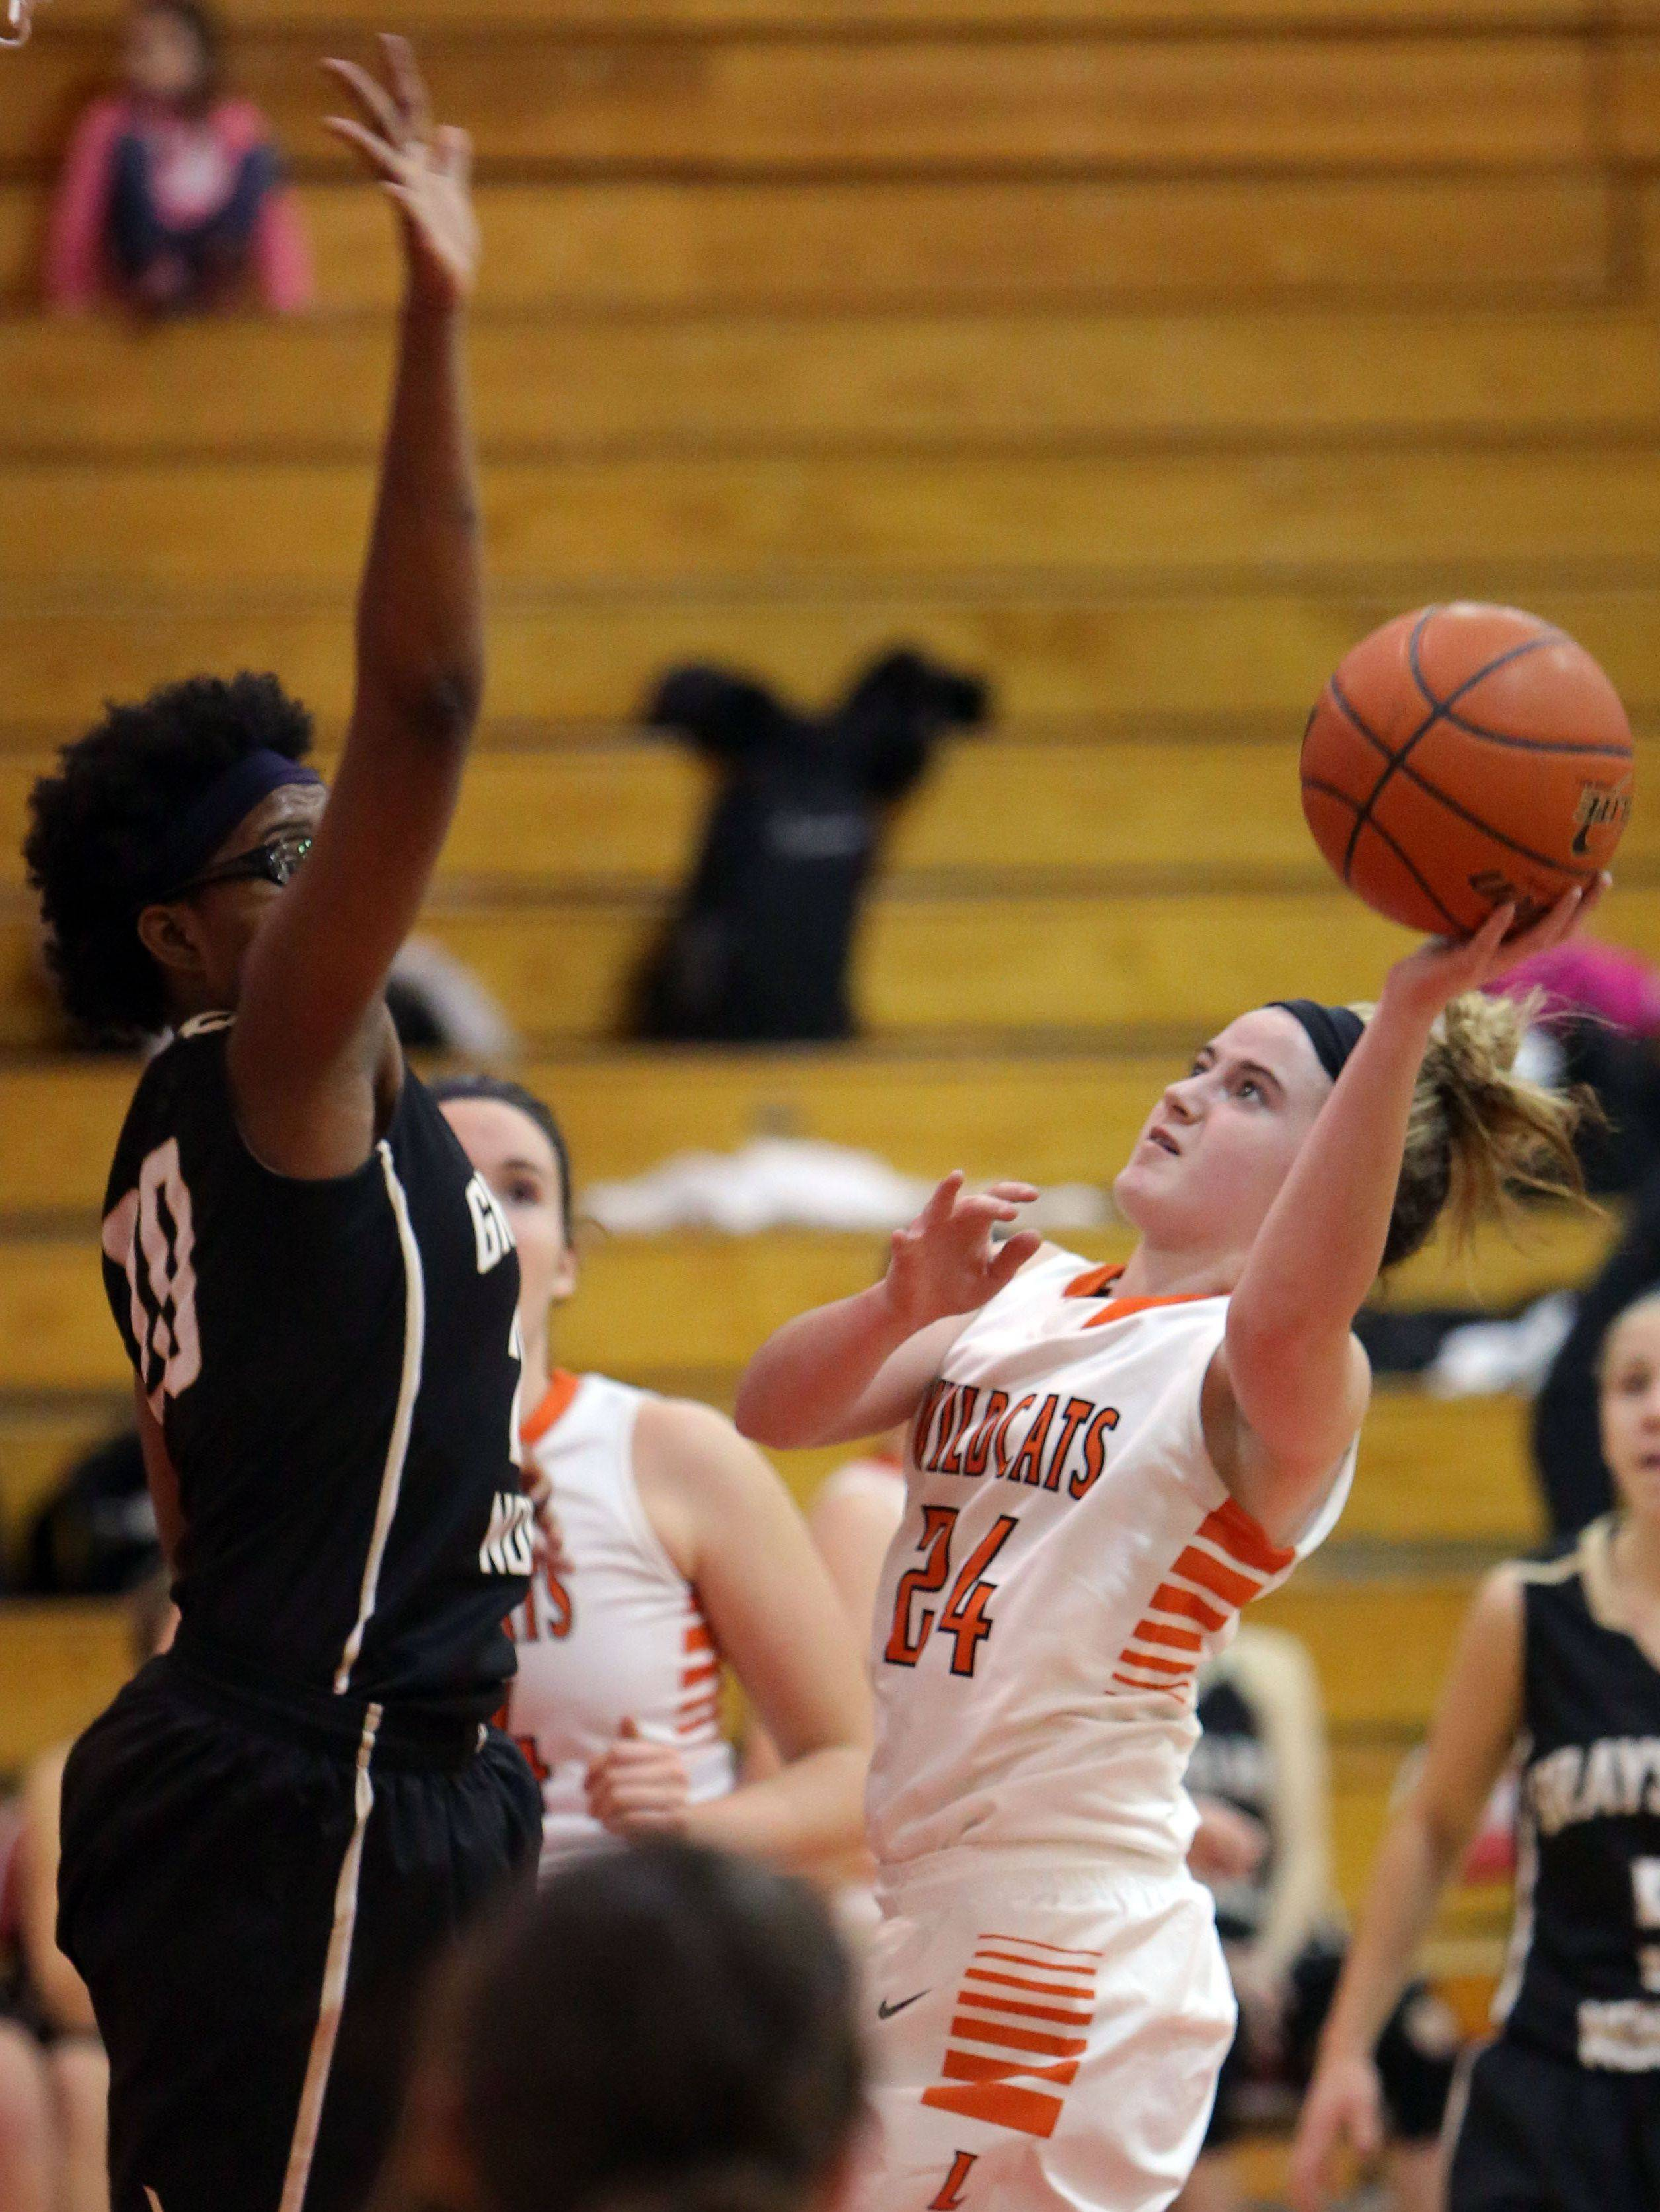 Libertyville's Rosie Lynch, right, drives on Grayslake North's Brittany Thibeaux on Thursday at Mundelein High School.